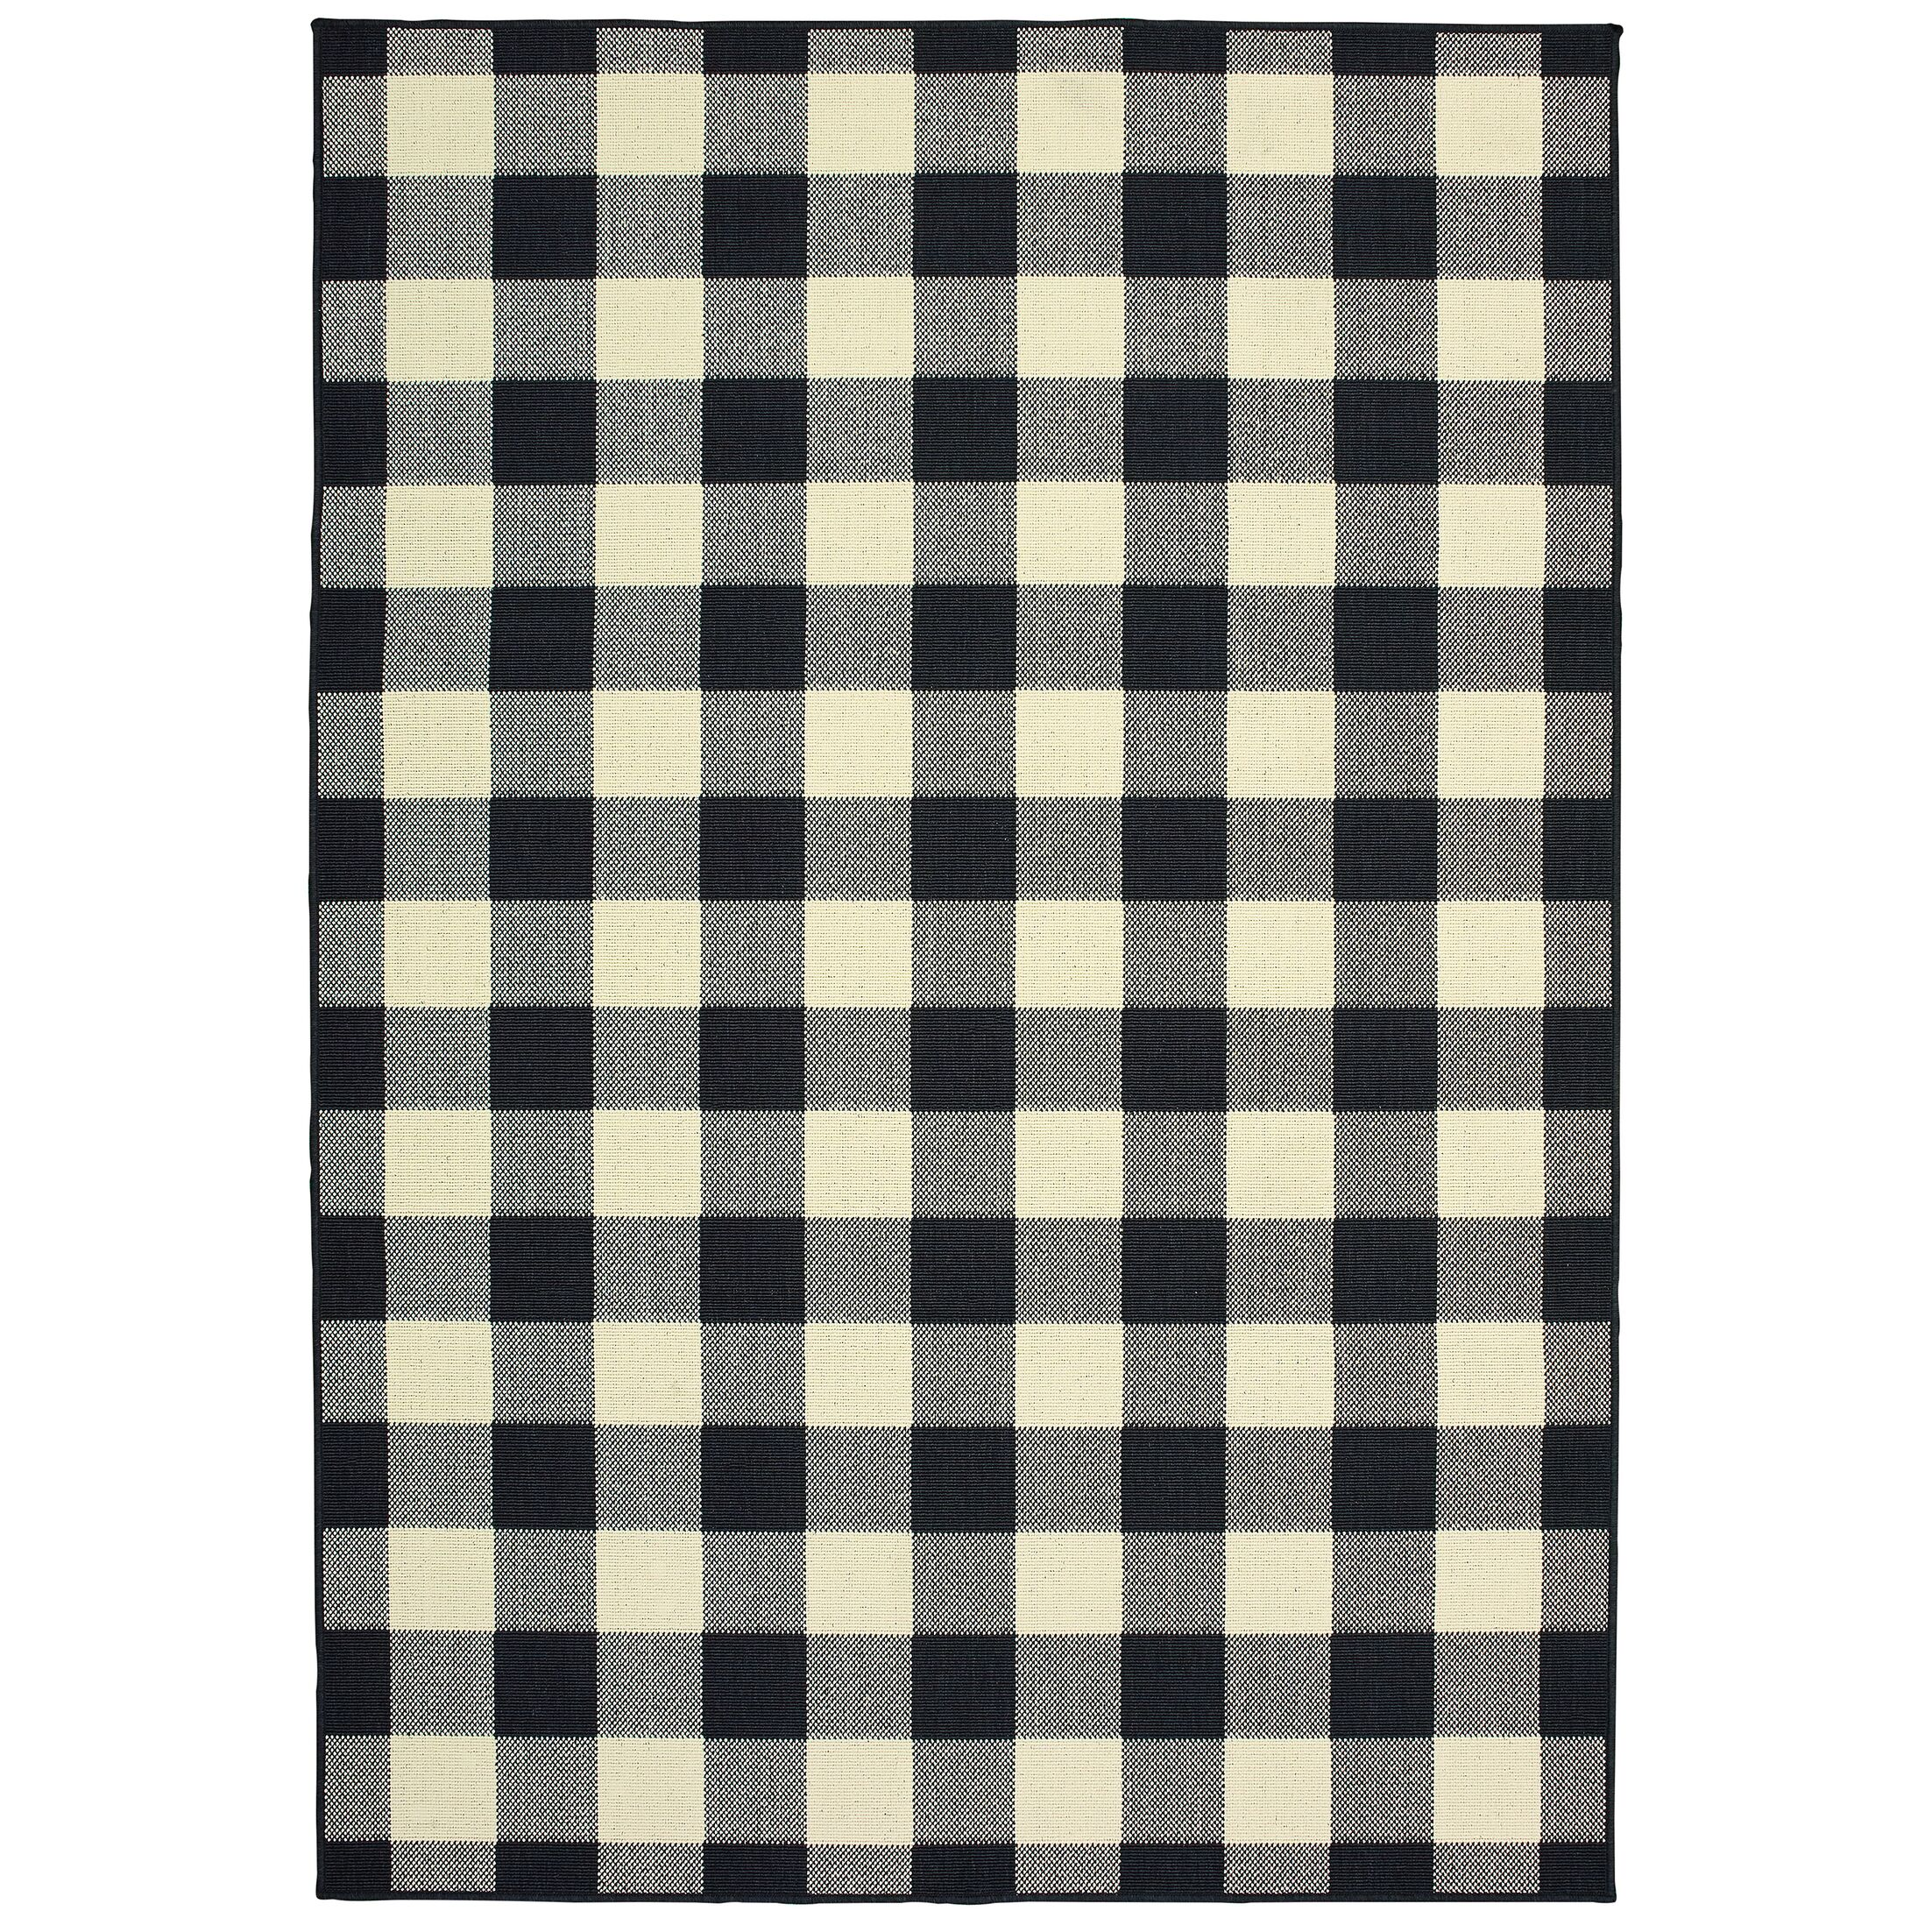 Wiest Gingham Check Black/Ivory Indoor/Outdoor Area Rug Rug Size: Rectangle 2'5